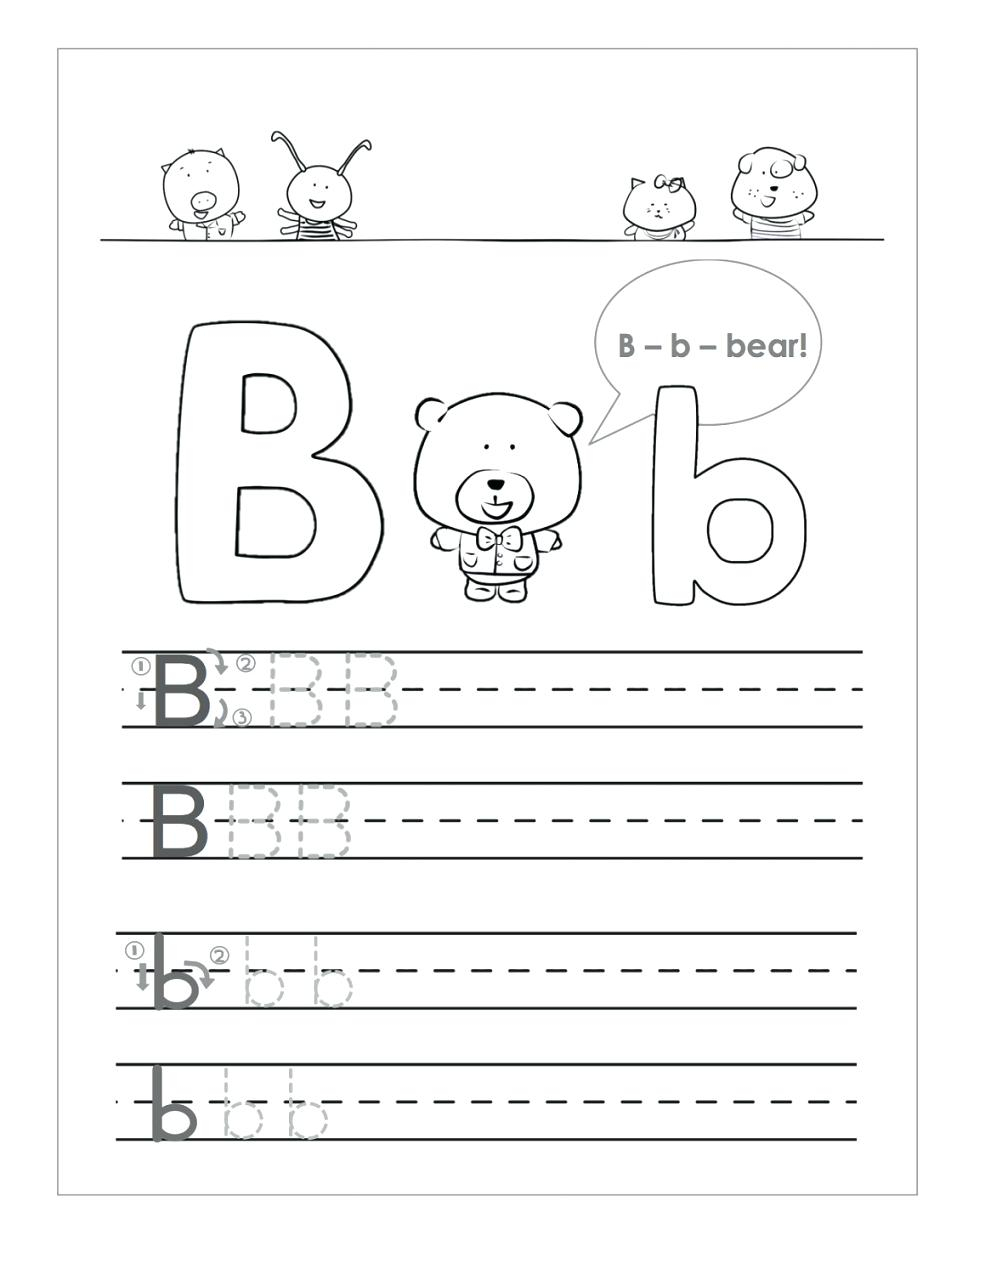 Letter B Worksheets To Printable. Letter B Worksheets within Letter B Worksheets For 3 Year Olds